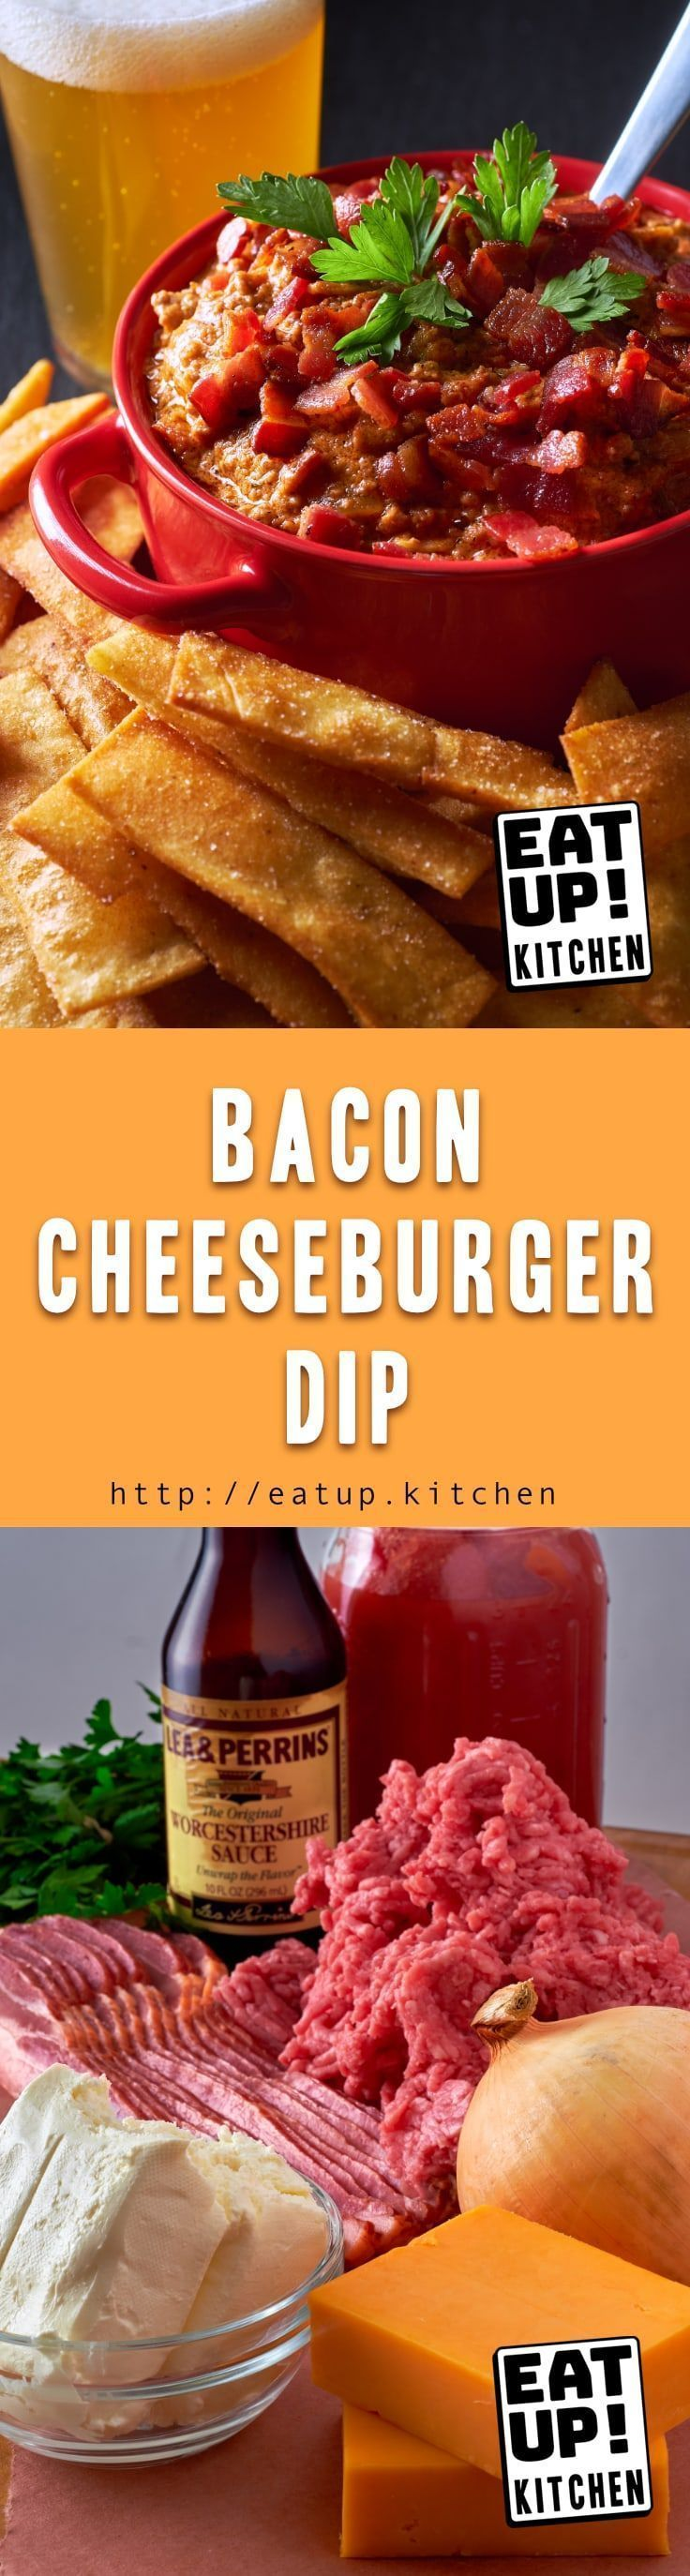 Bacon Cheeseburger Dip Bacon Cheeseburger Dip Bacon Cheeseburger Dip Bacon Cheeseburger Dip Bacon C